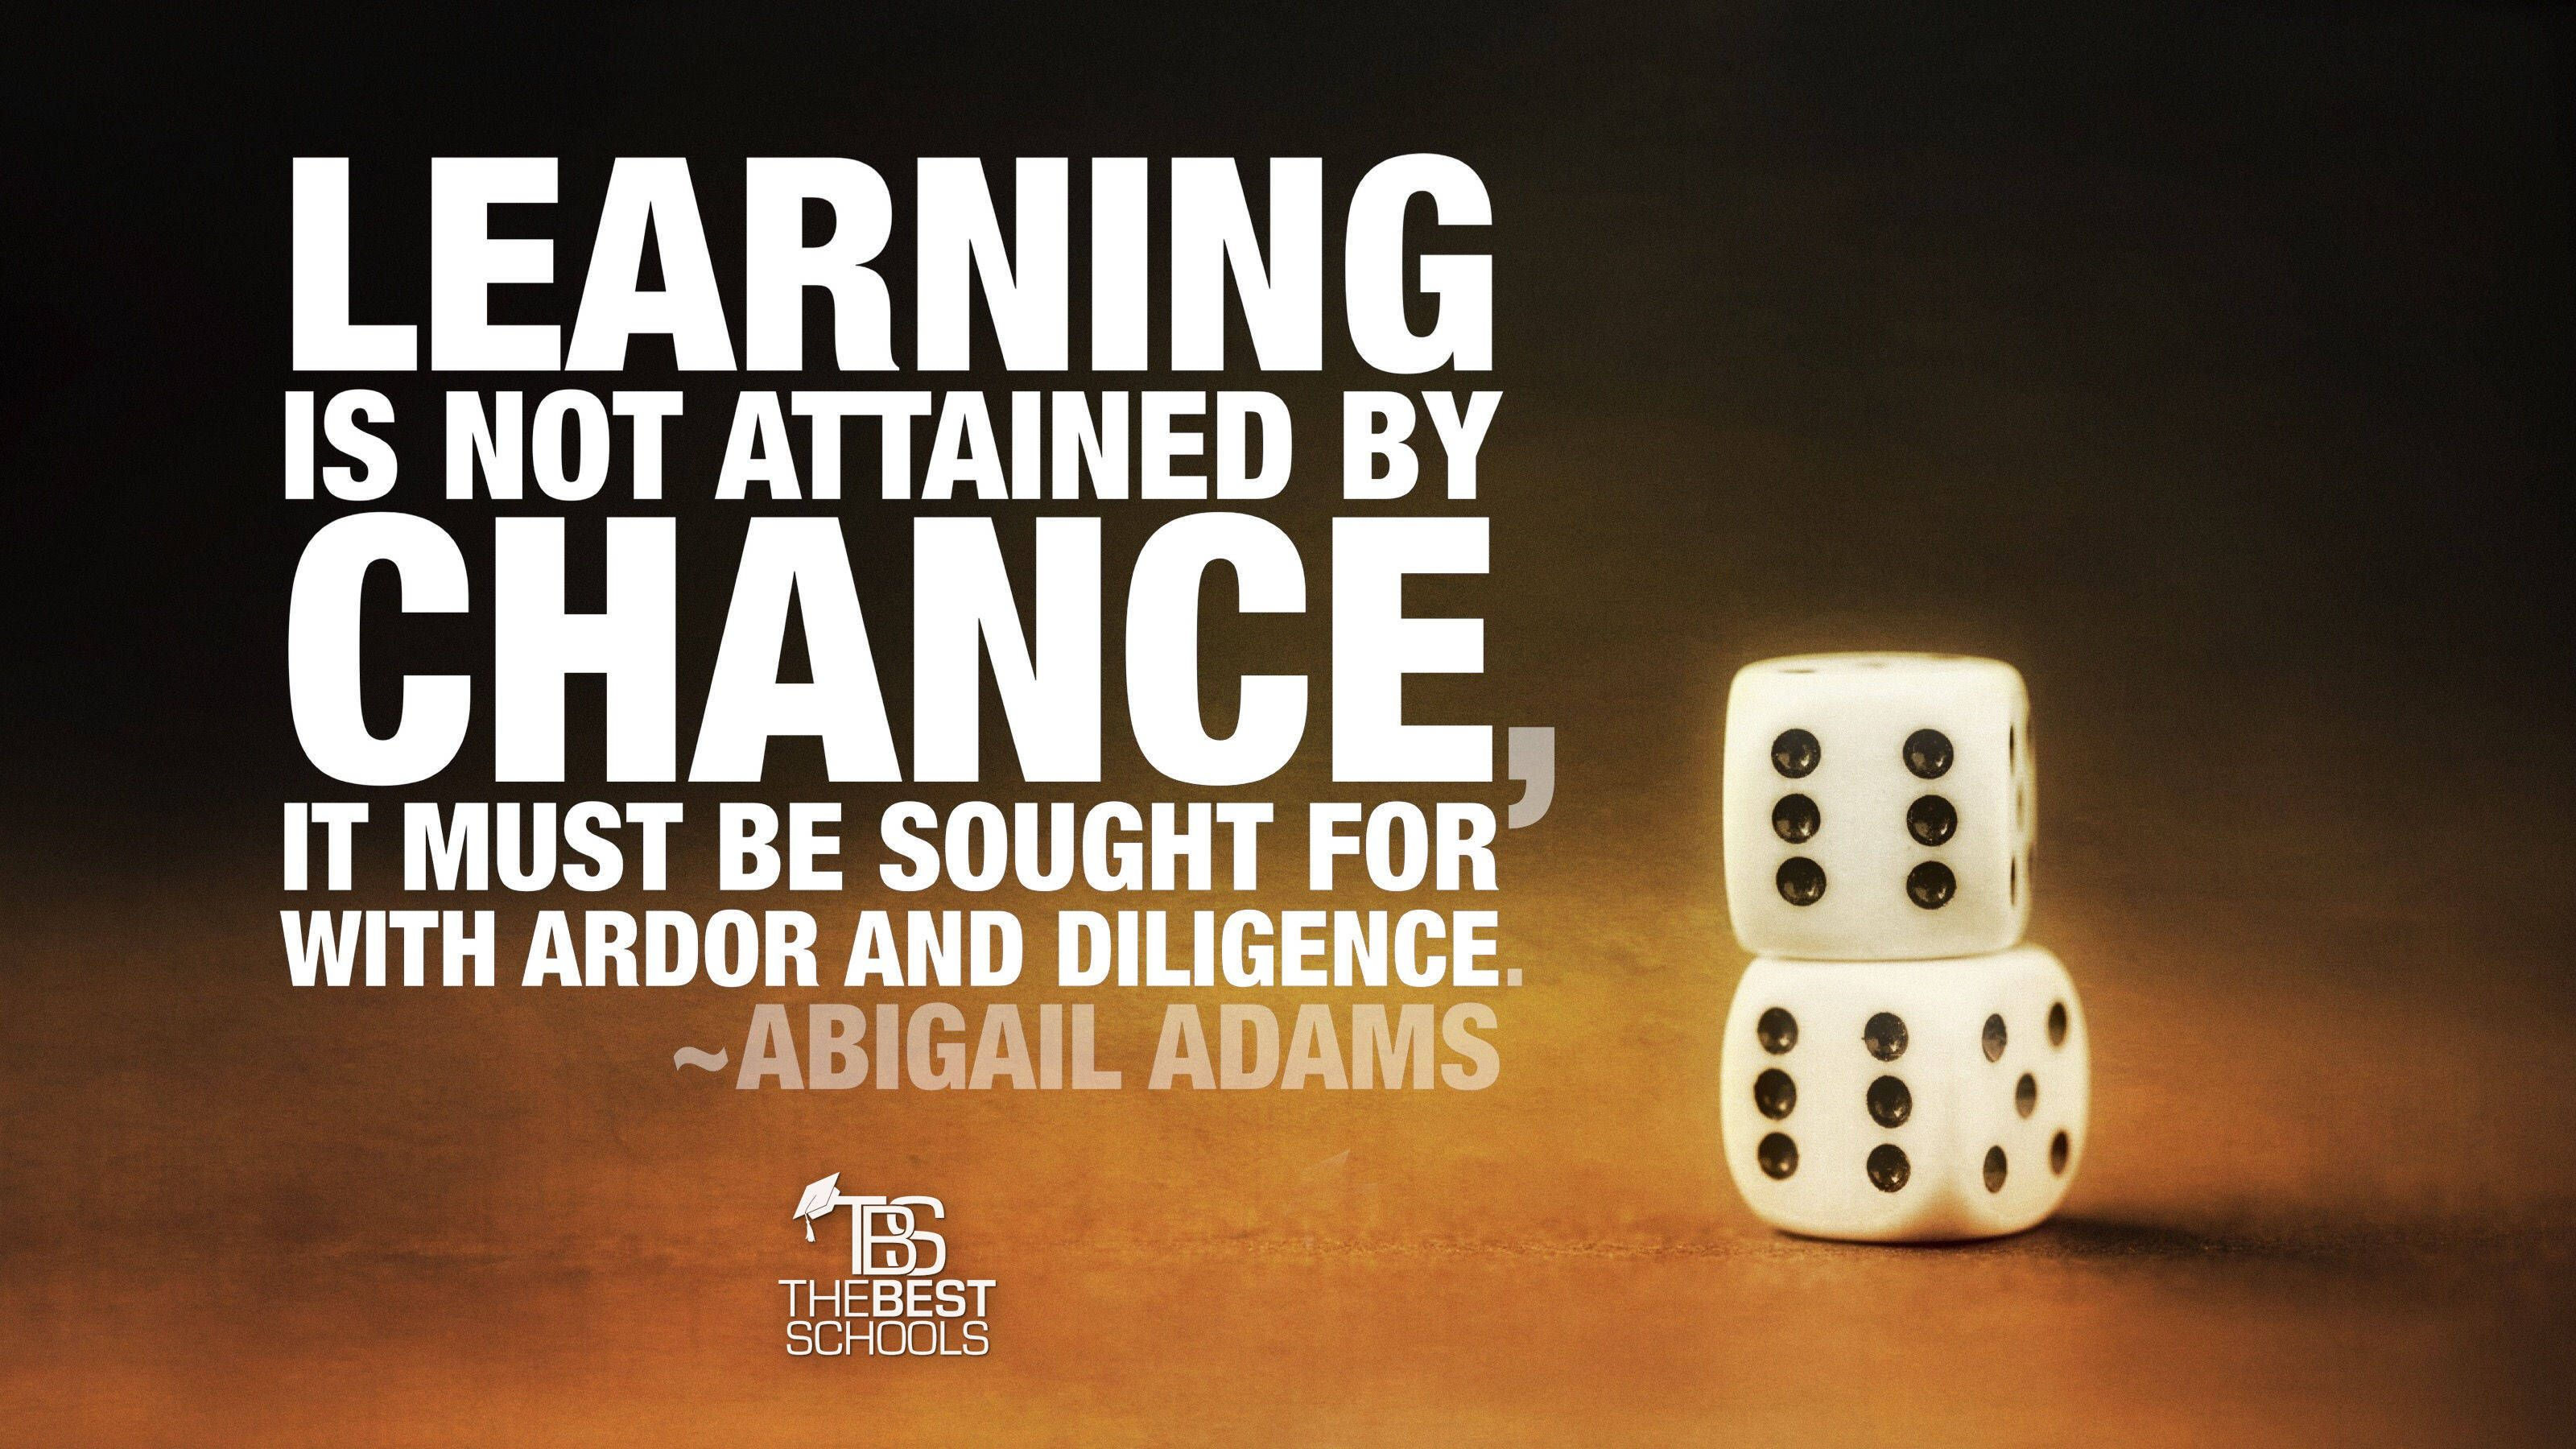 Abigail Adams on Learning not Being Attained by Chance